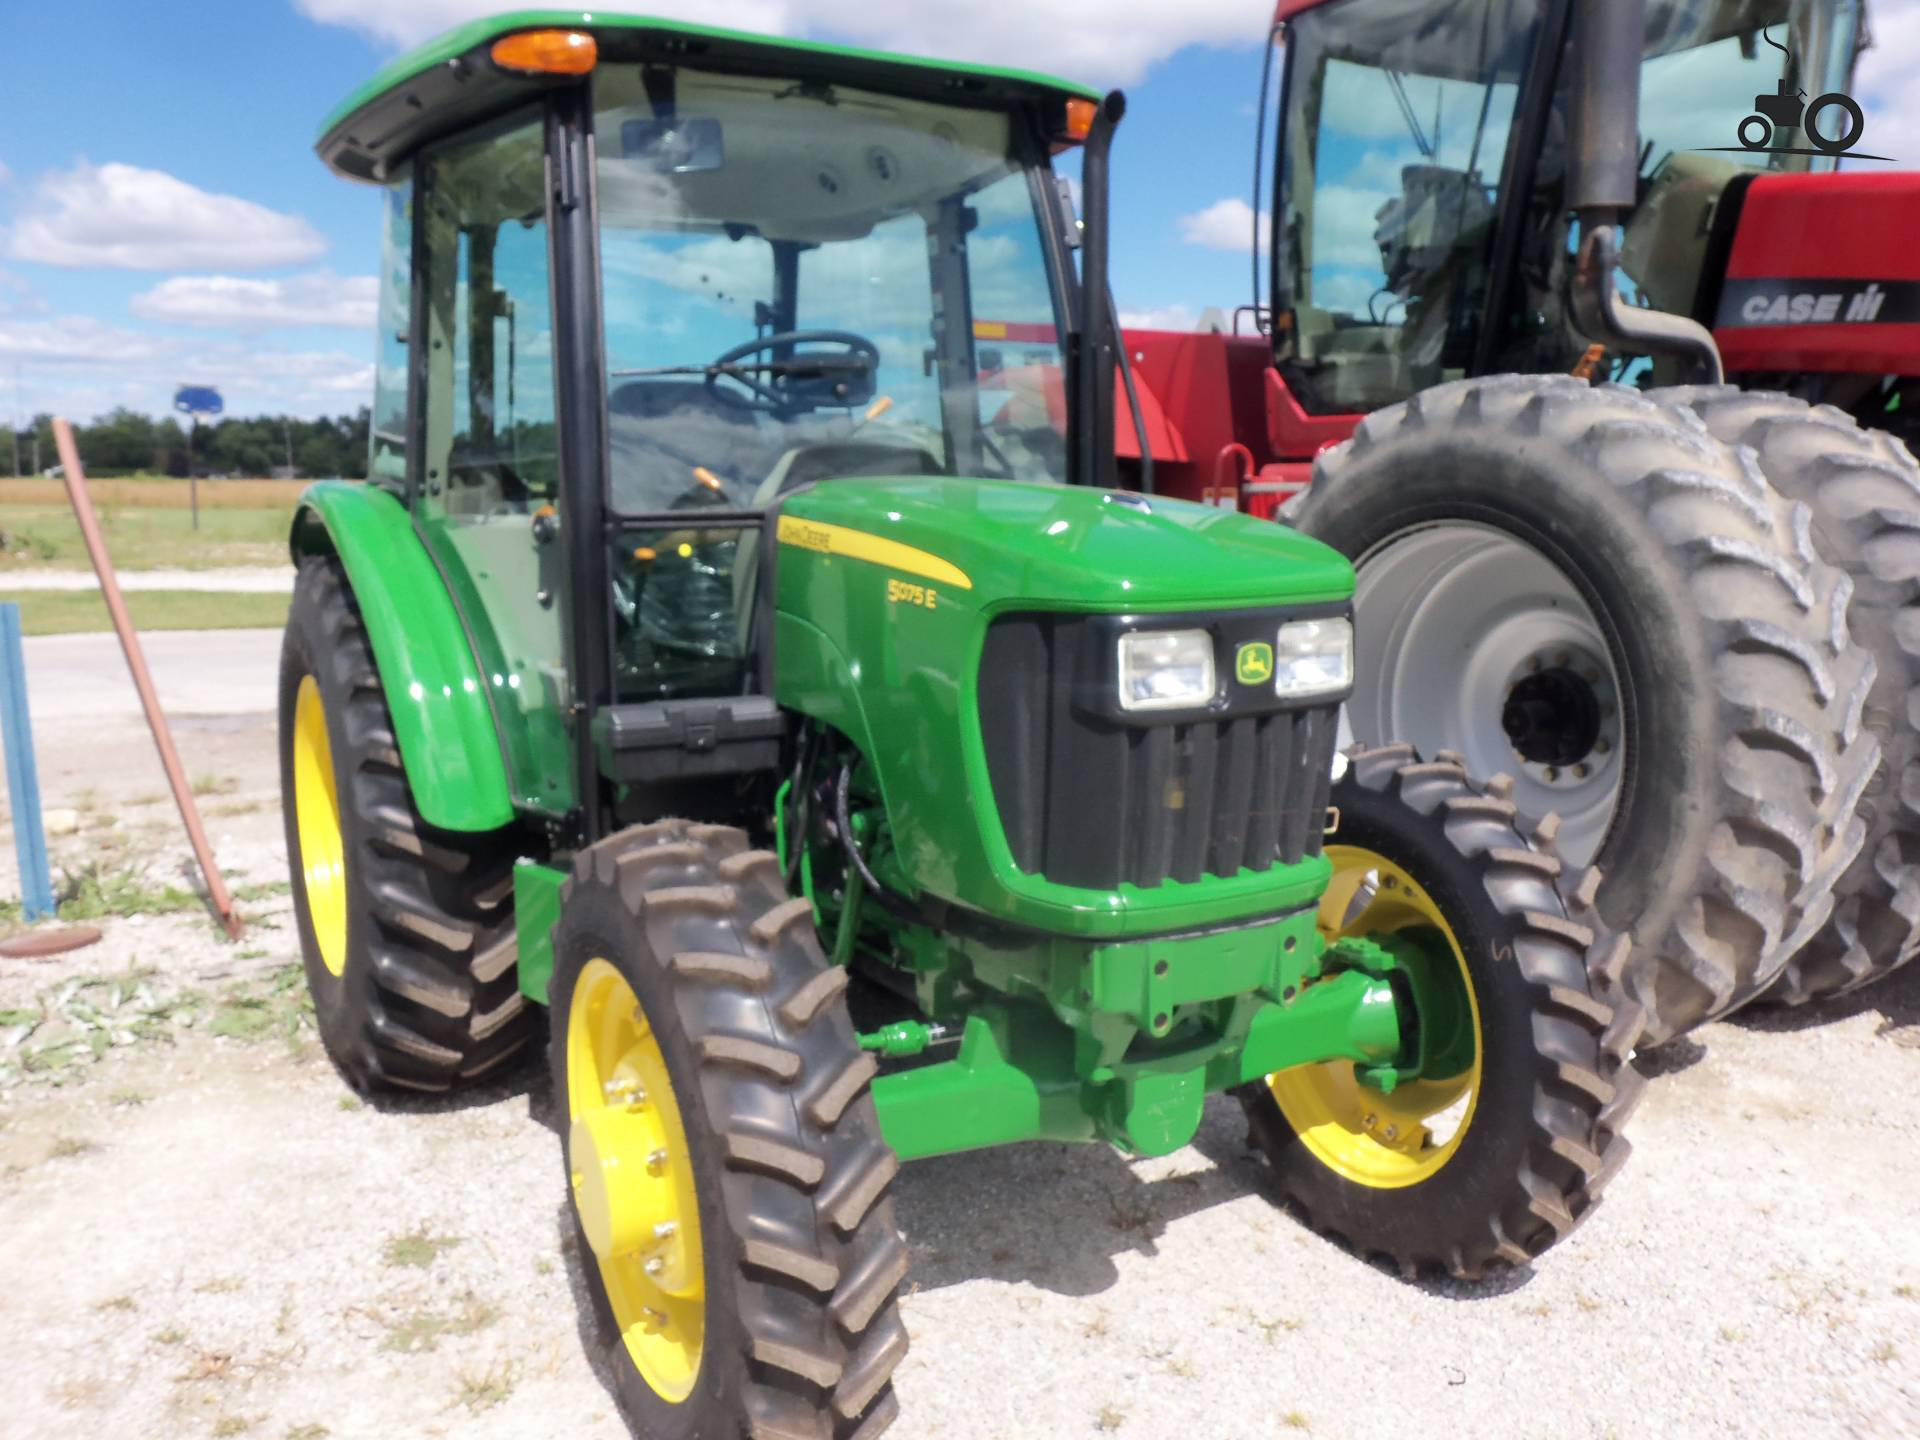 John Deere Tractor Tire Pressure : John deere e specs and data everything about the